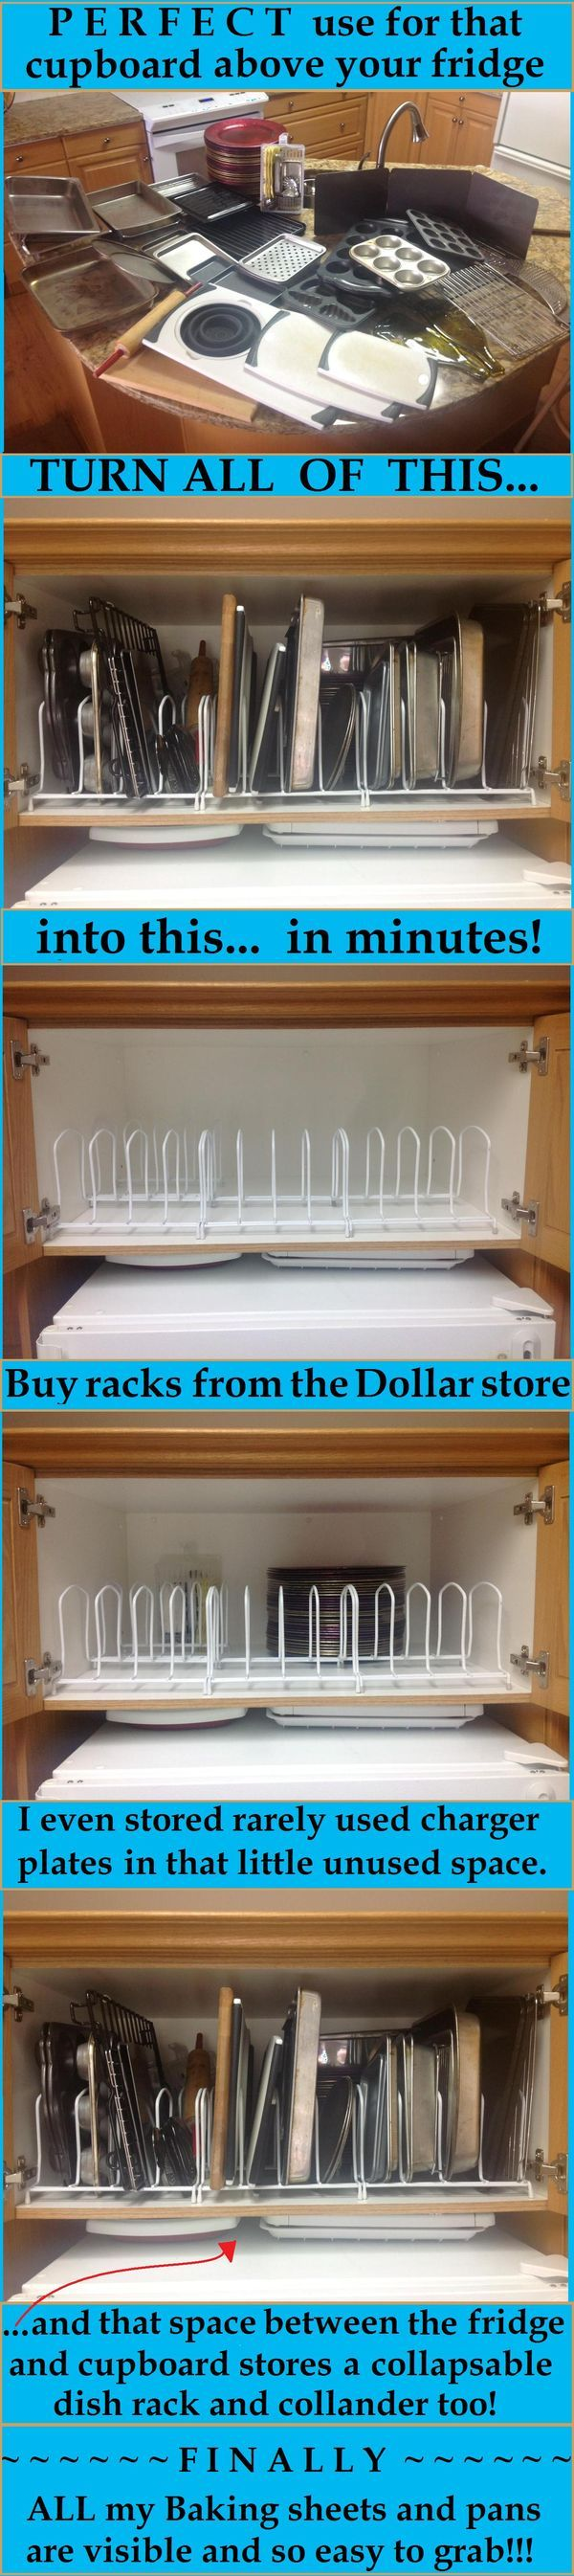 Dollar Store Dish Racks To Separate The Pans And Lids In A Cabinet Above The Fridge Kitchen